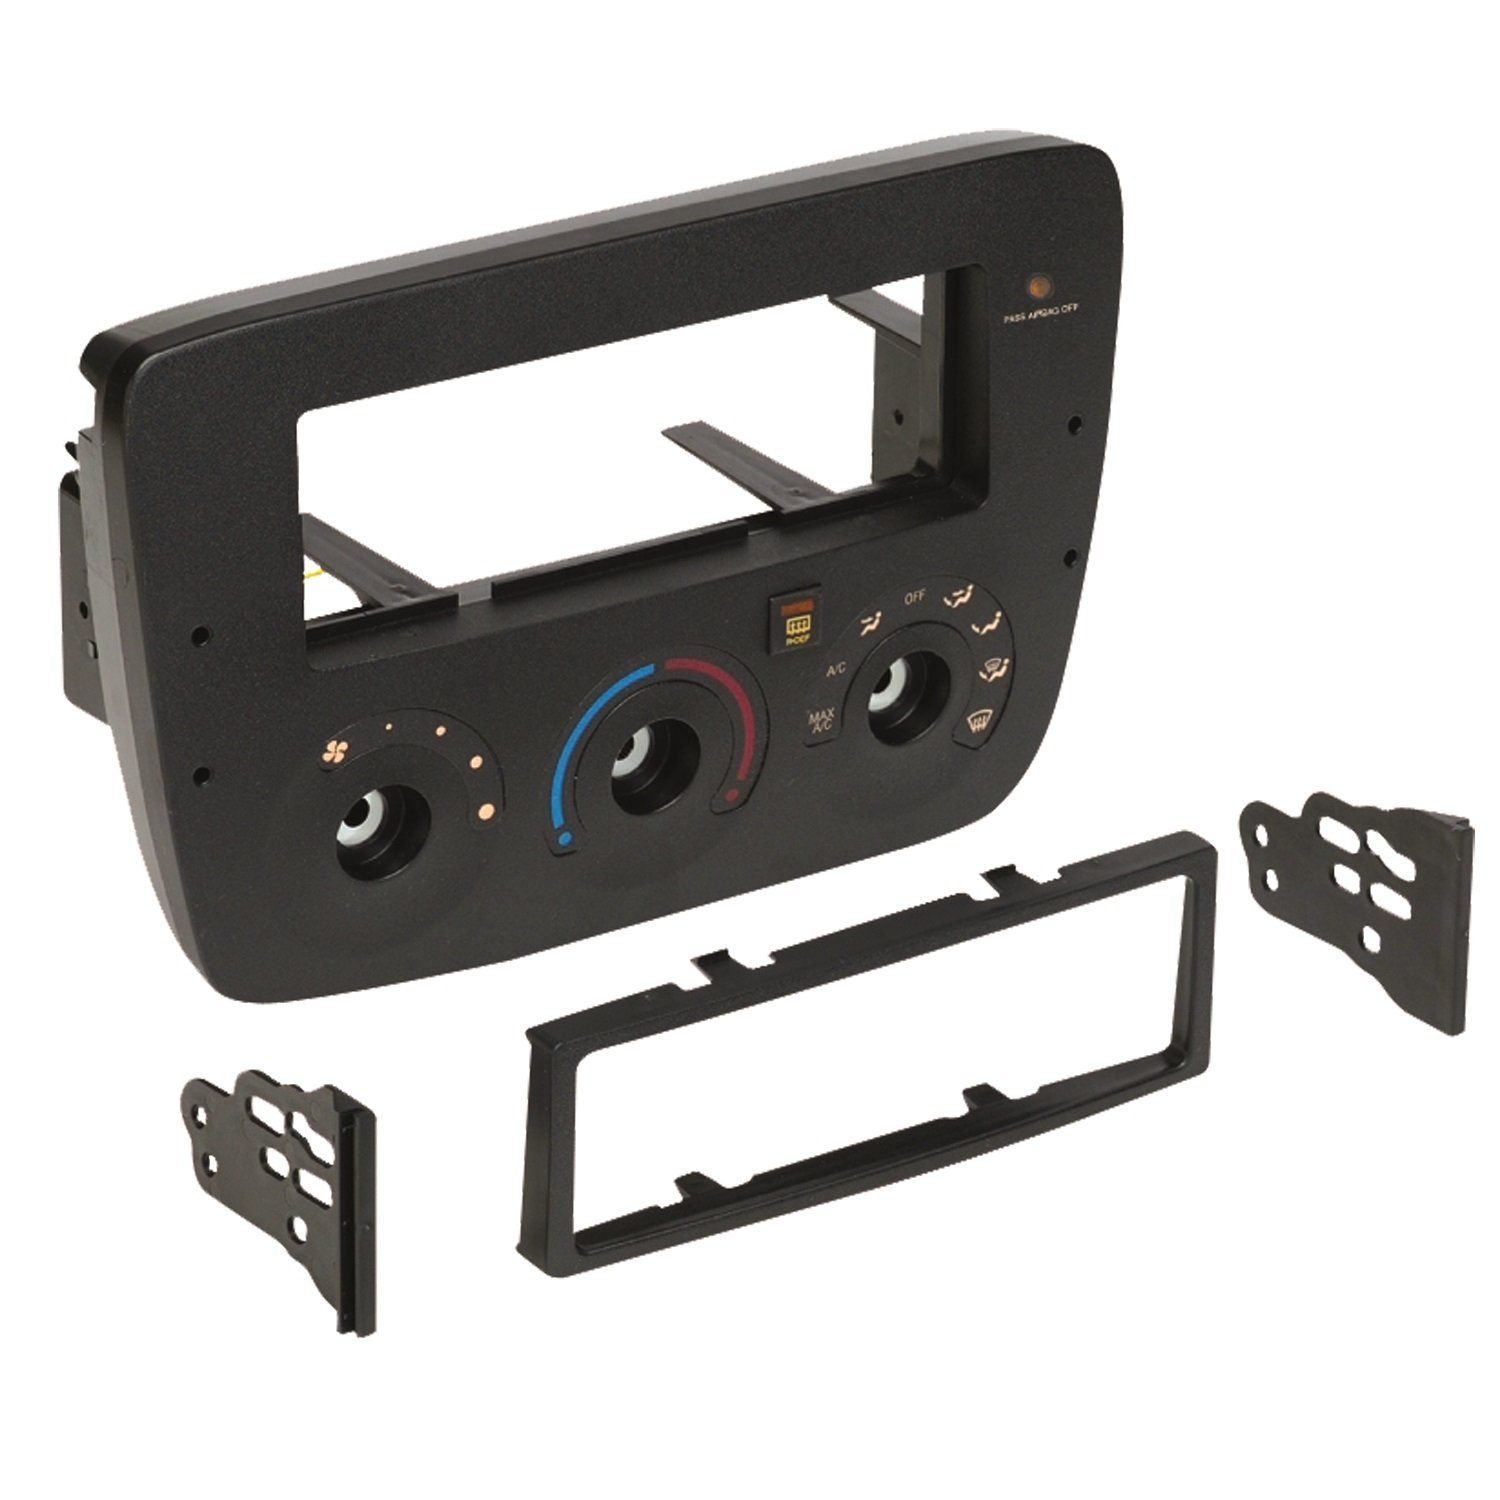 Metra 99-5717 Taurus/Sable 04-07 Dash kit